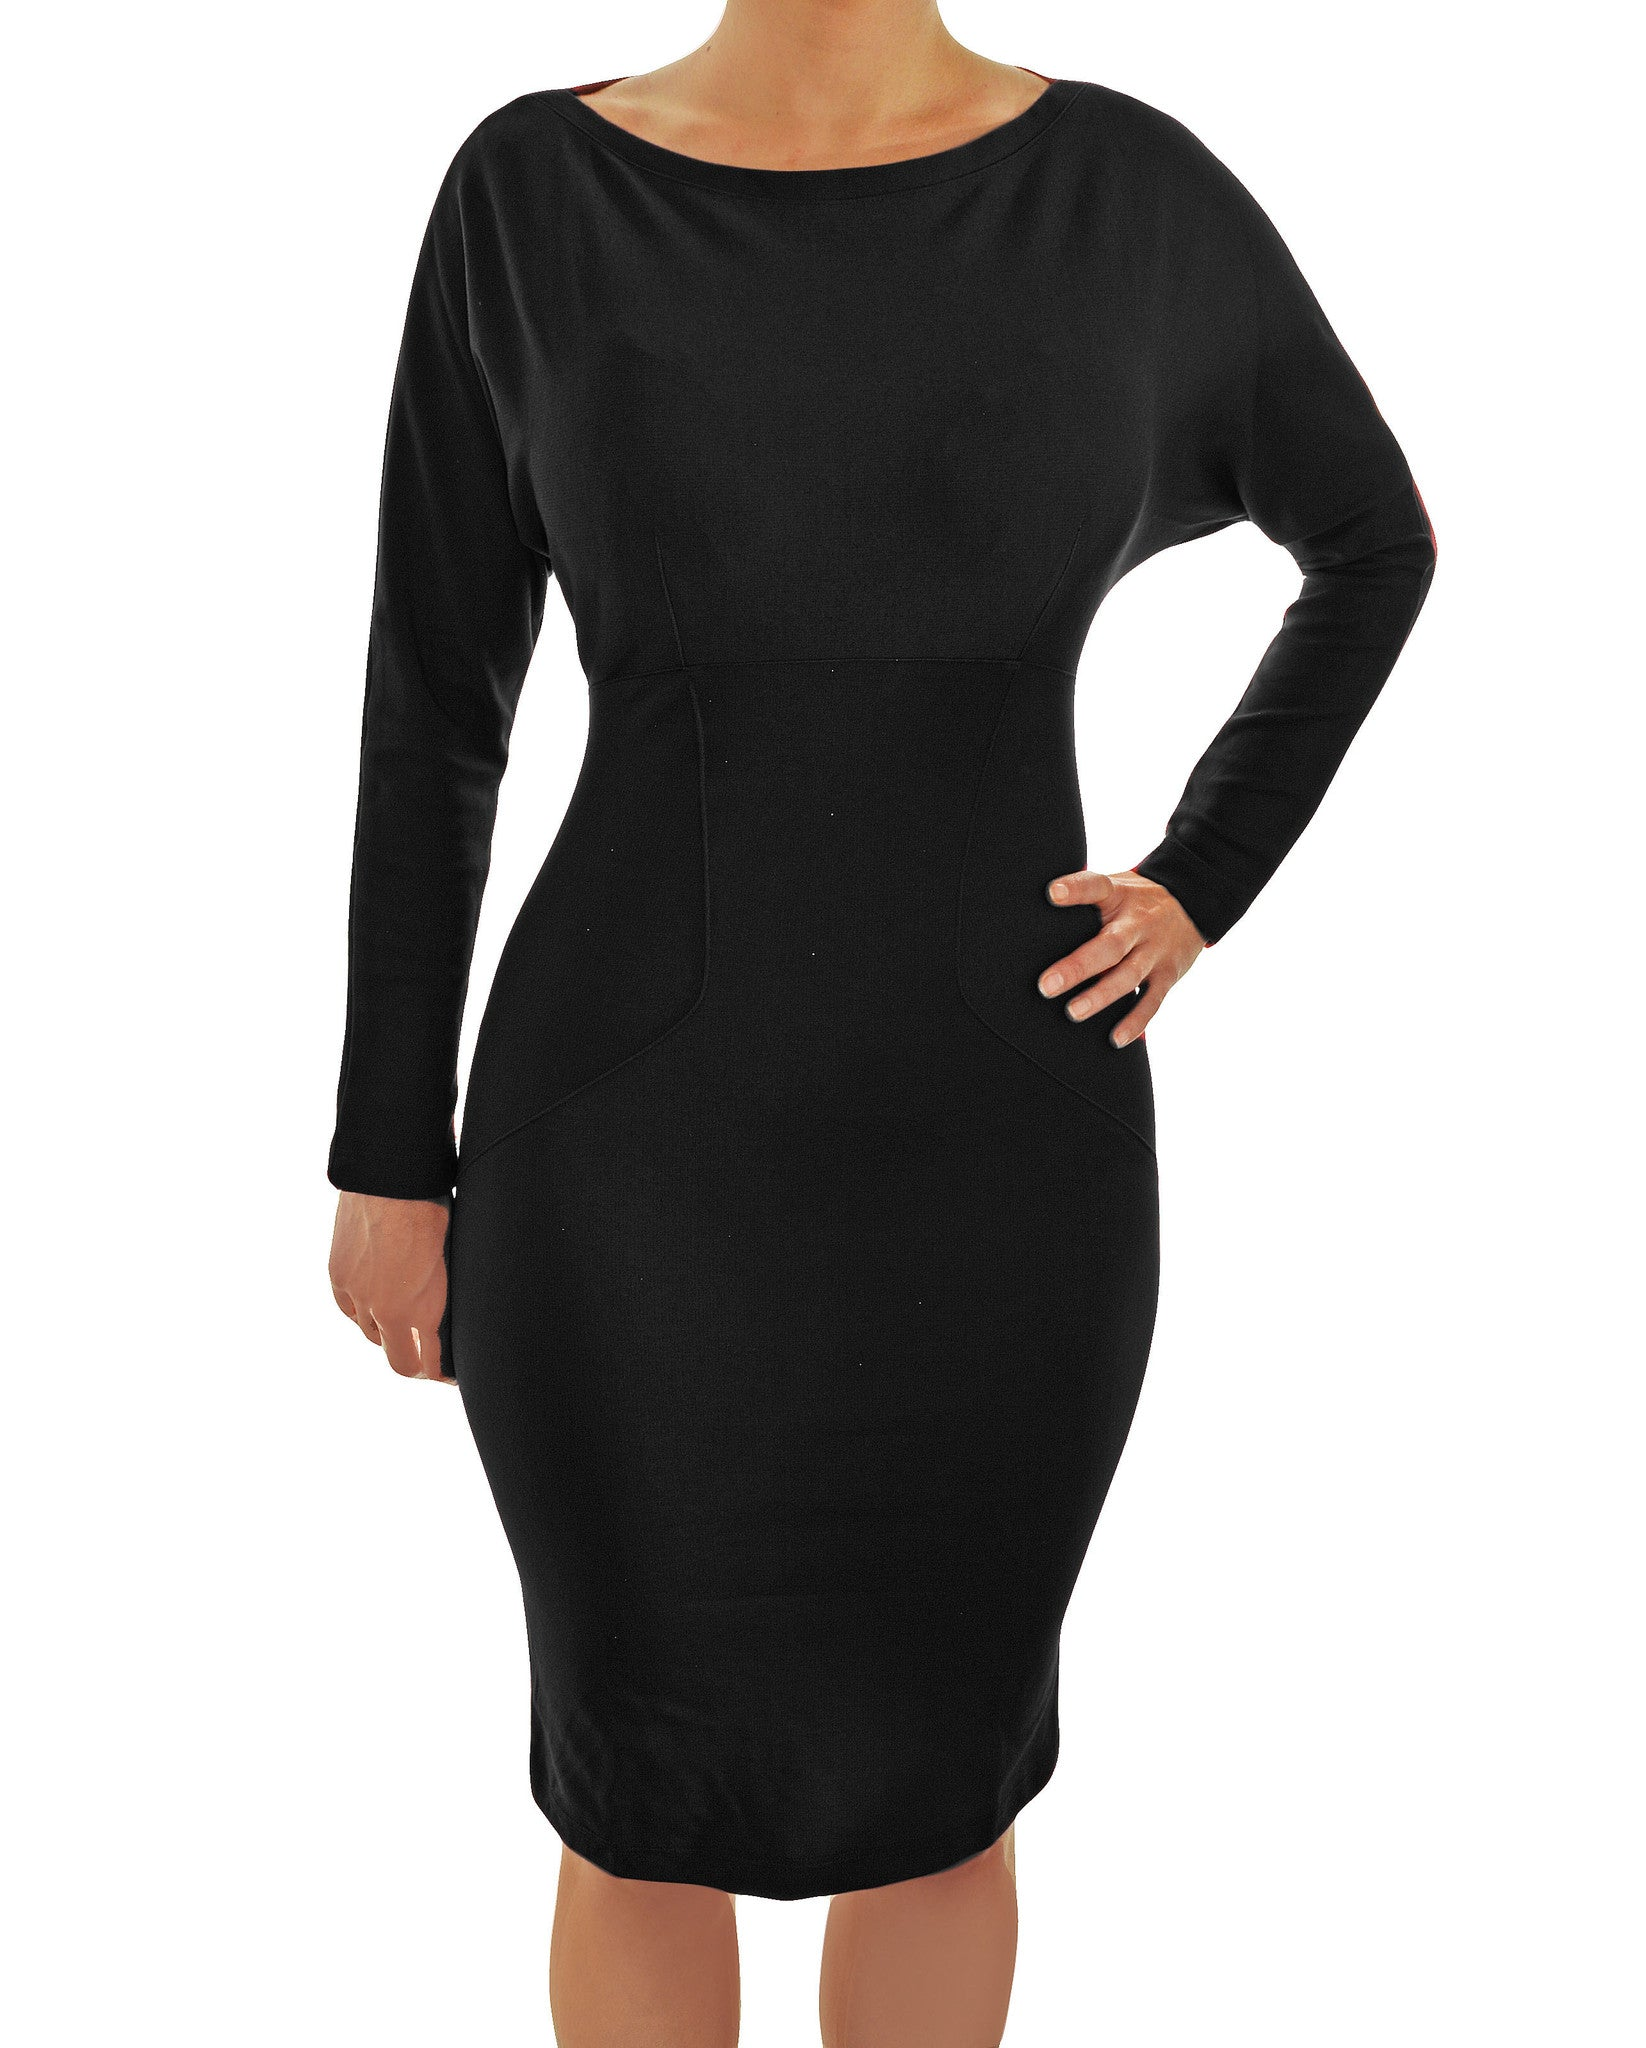 Pinup Couture Laura Byrnes Black Label Dovima Batwing Stretch Wiggle Dress | Black,Dress,Pinup Couture - Discount Divas